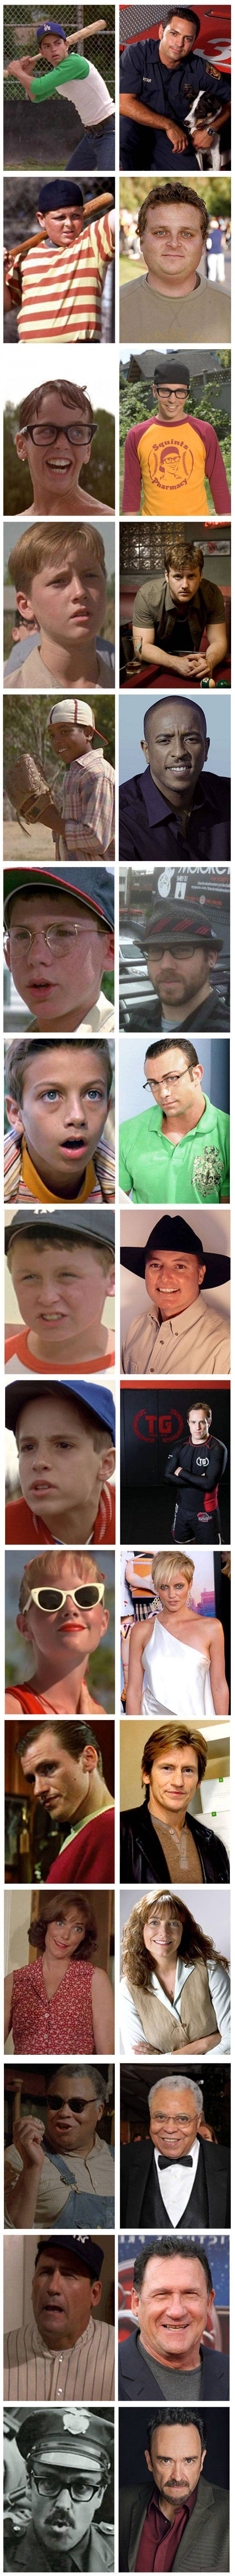 The Sandlot - Then and Now